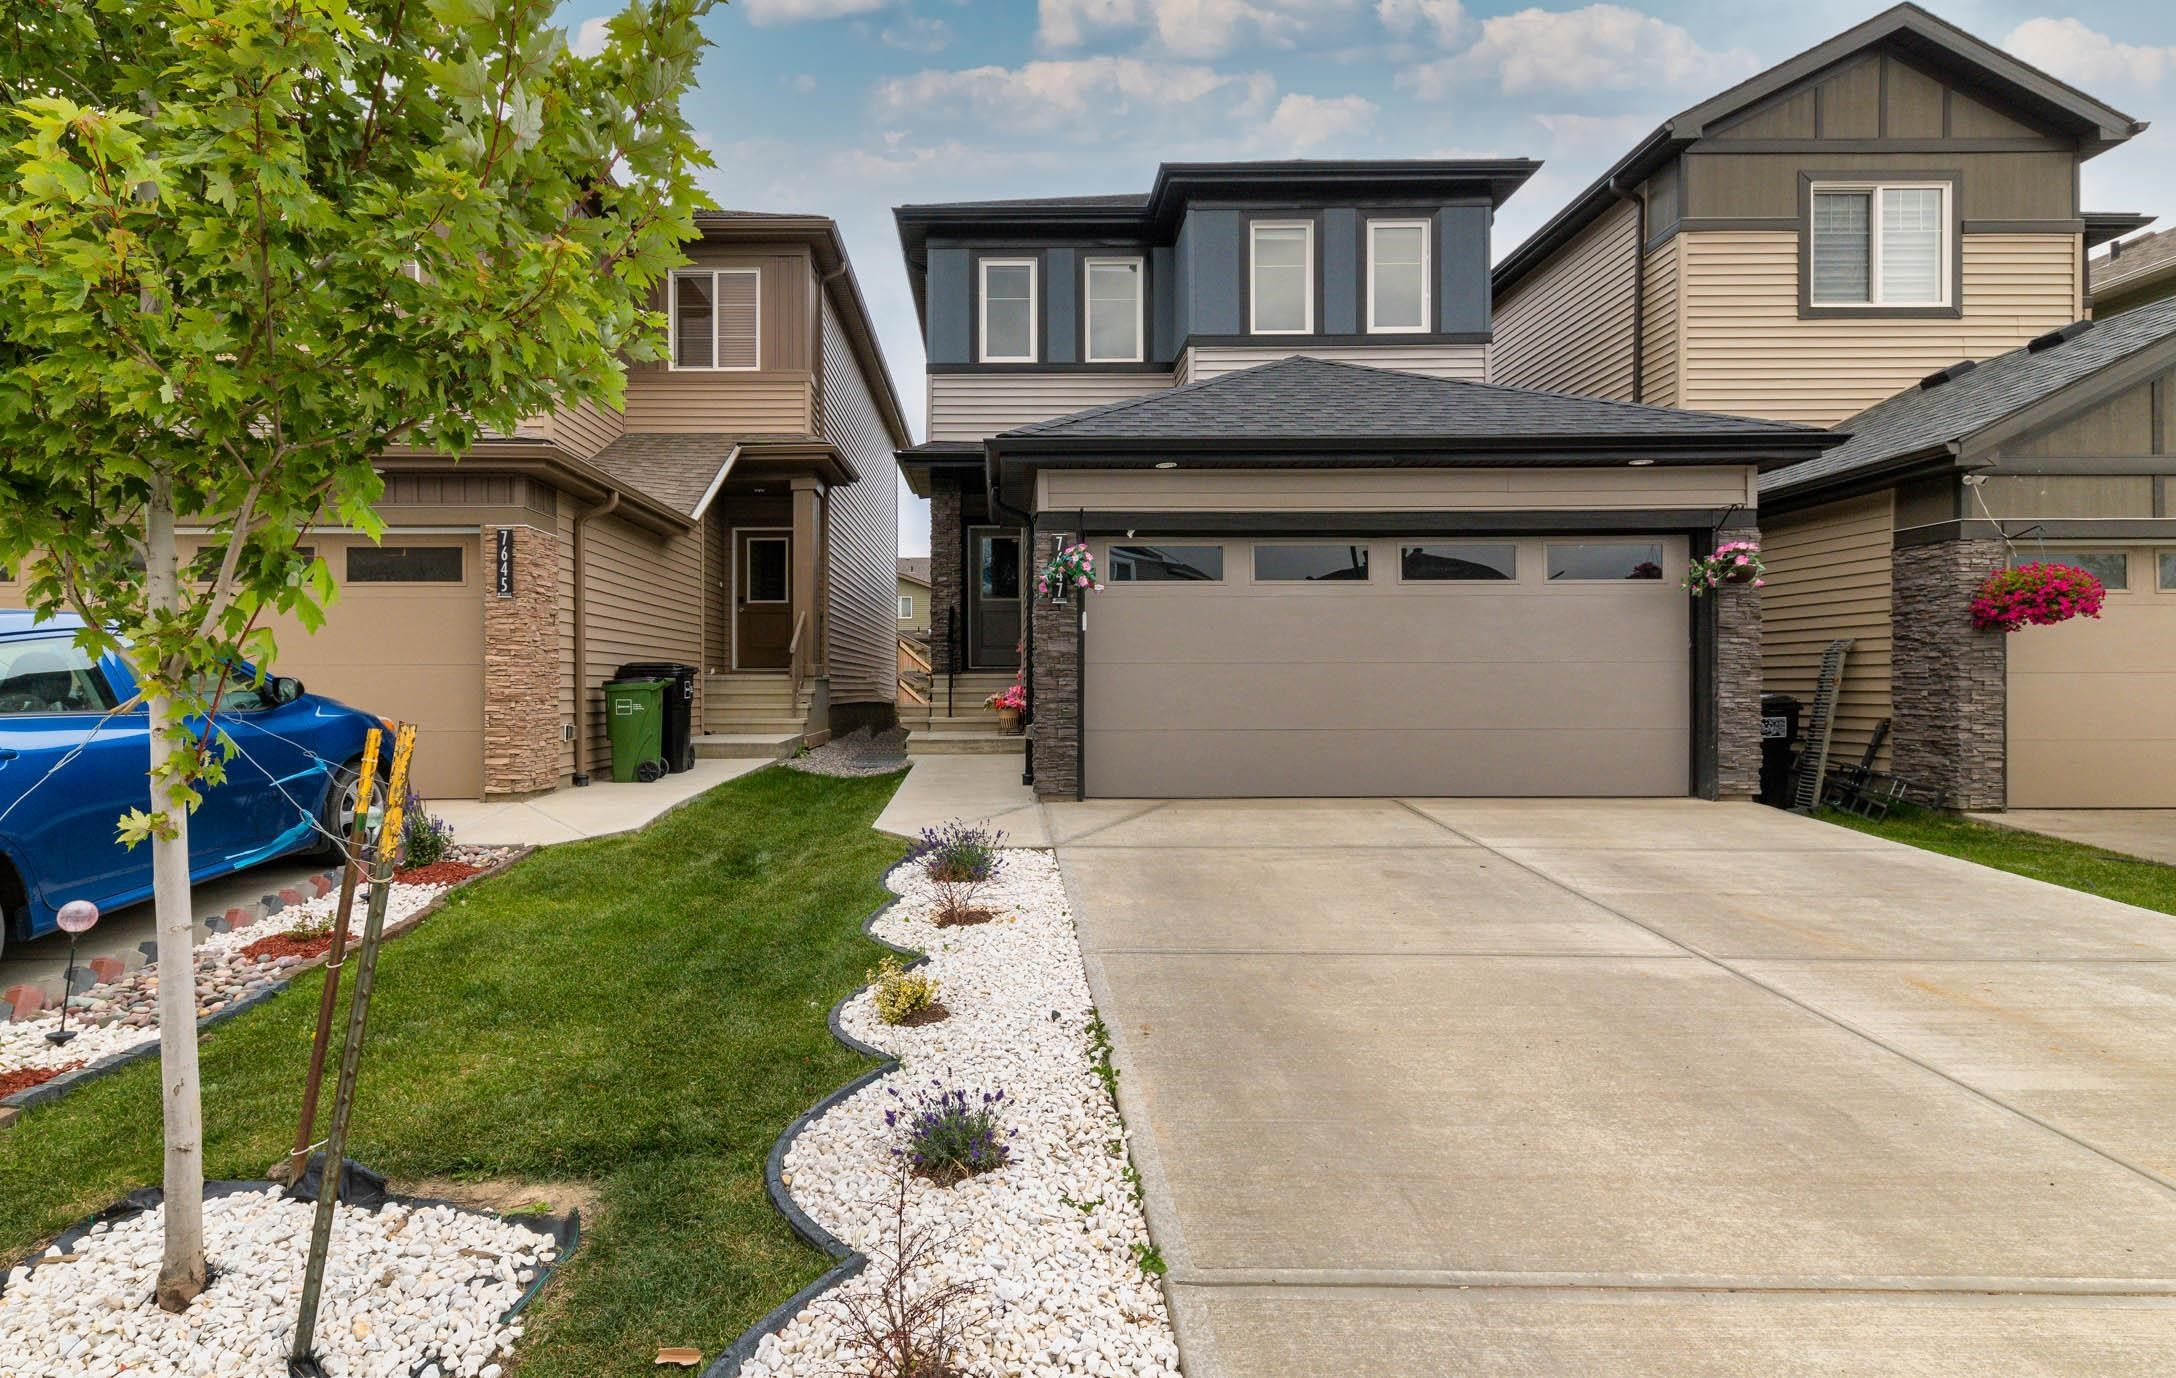 Main Photo: 7647 CREIGHTON Place in Edmonton: Zone 55 House for sale : MLS®# E4262314